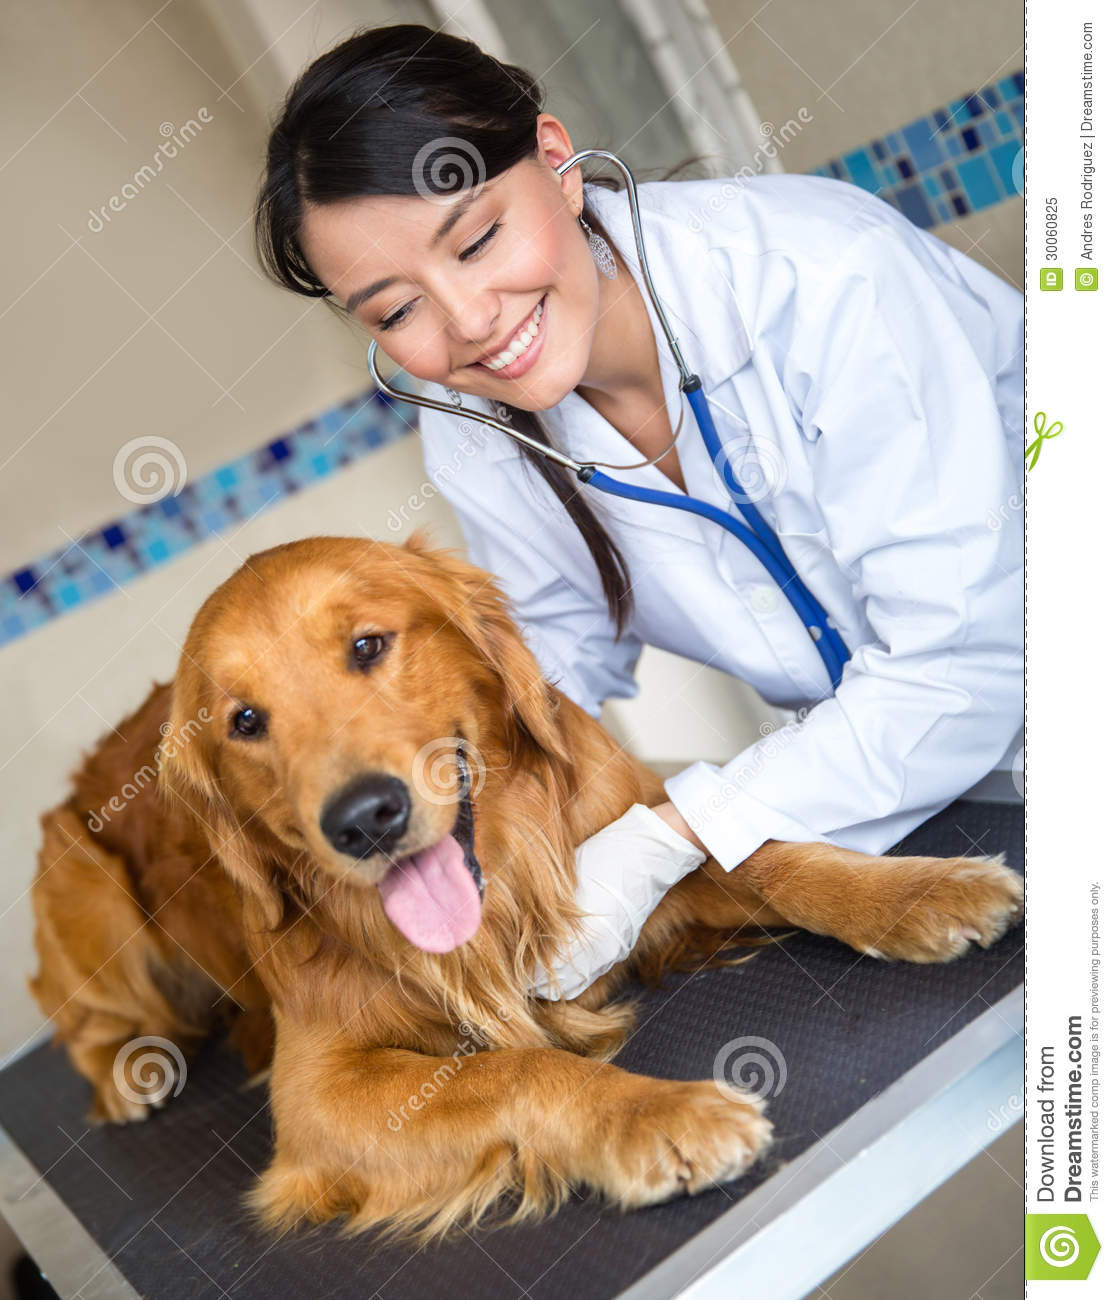 Veterinarian Checking A Dog Royalty Free Stock Photo - Image: 30060825